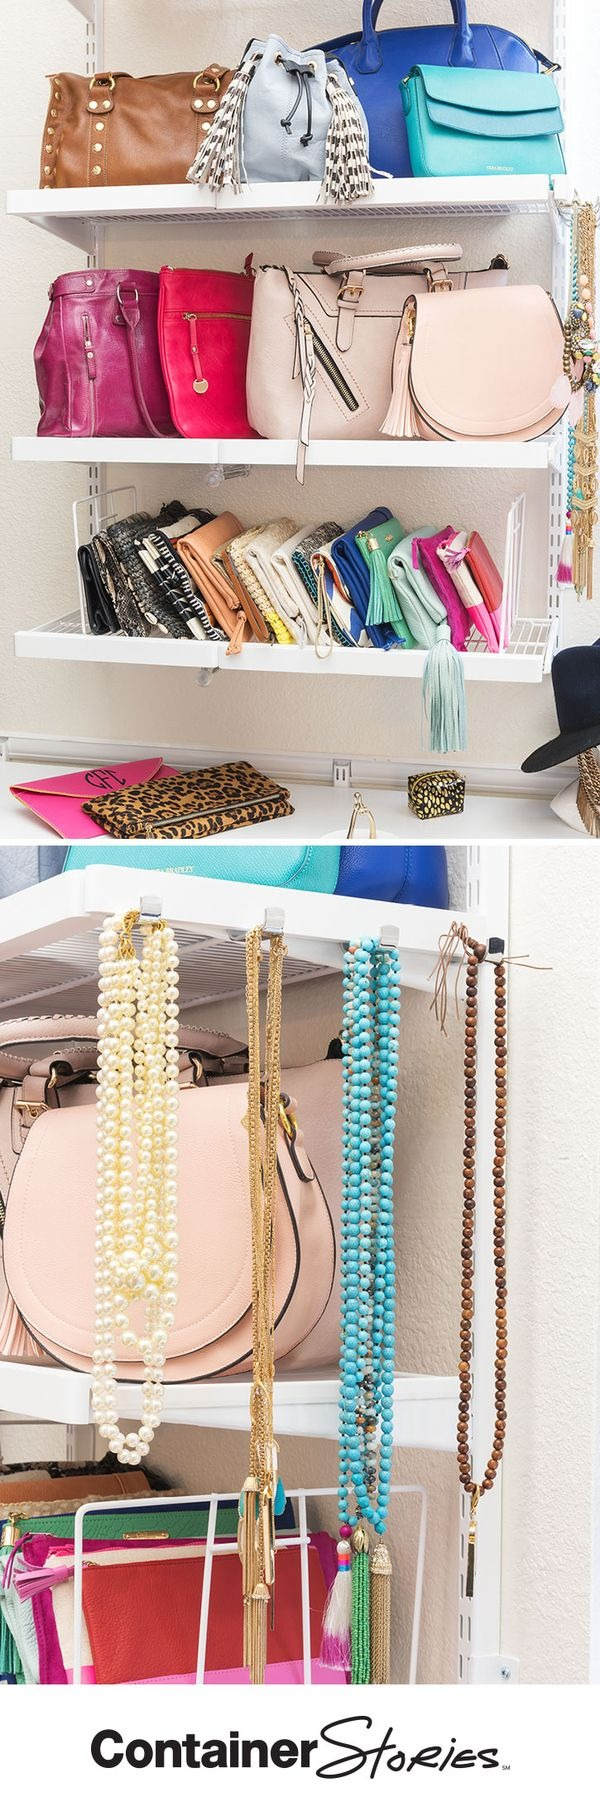 Hangmates at the end of elfa decor shelves are perfect for storing